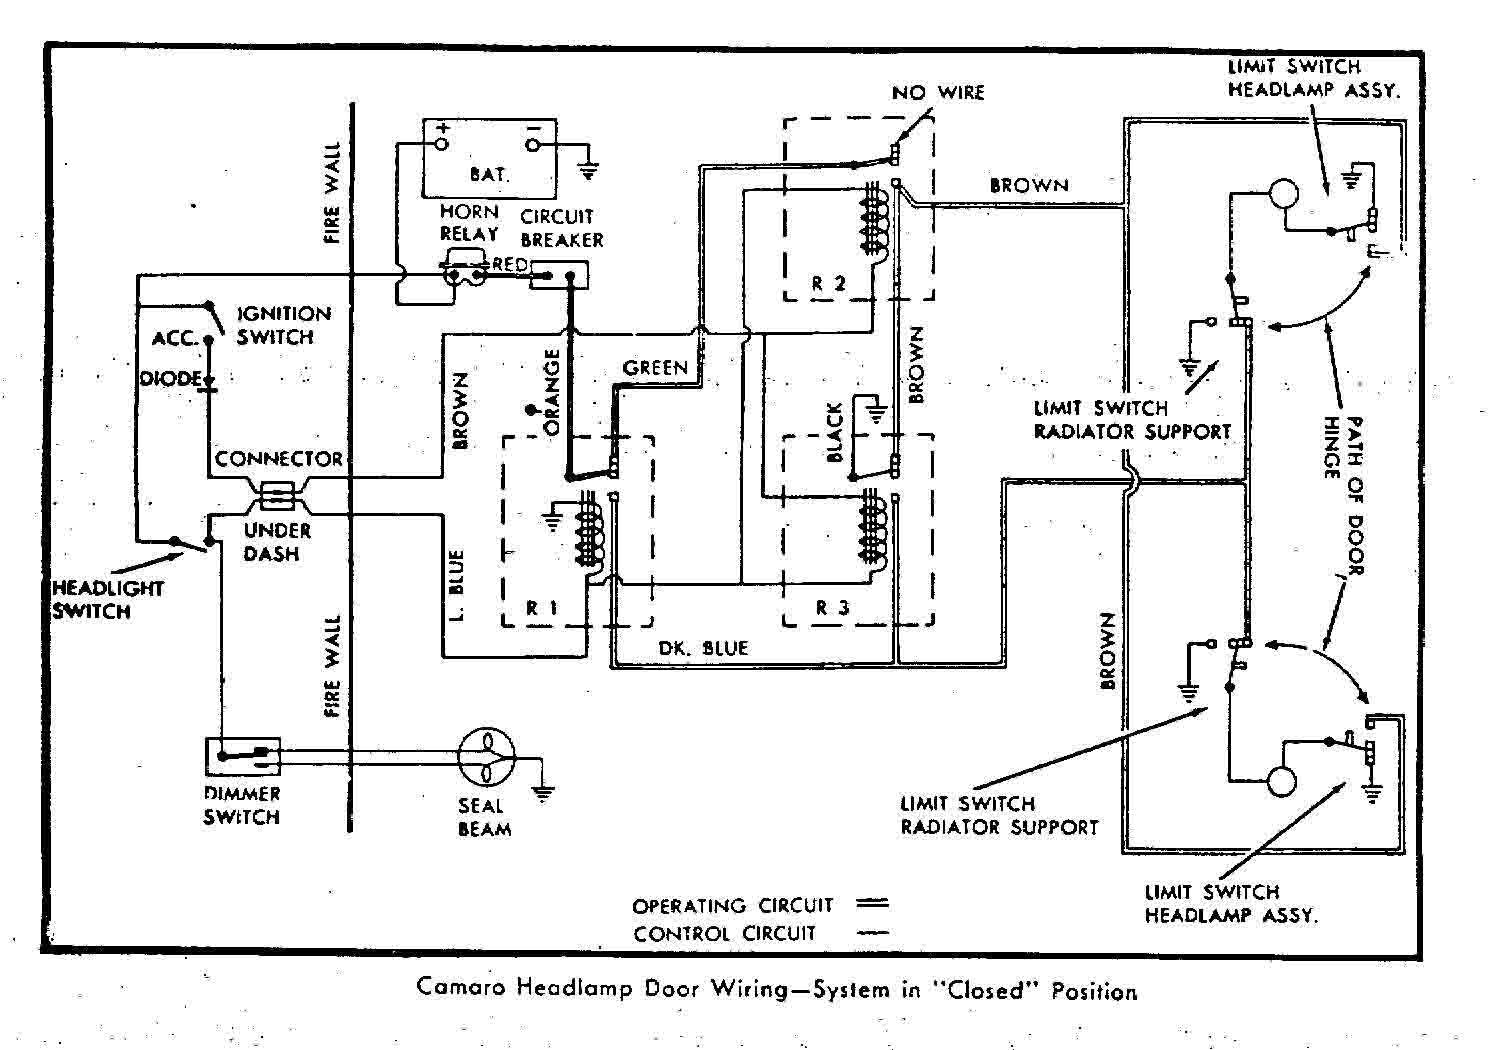 hight resolution of 1968 camaro horn diagram manual e book68 camaro horn relay wiring harness wiring diagram new68 camaro